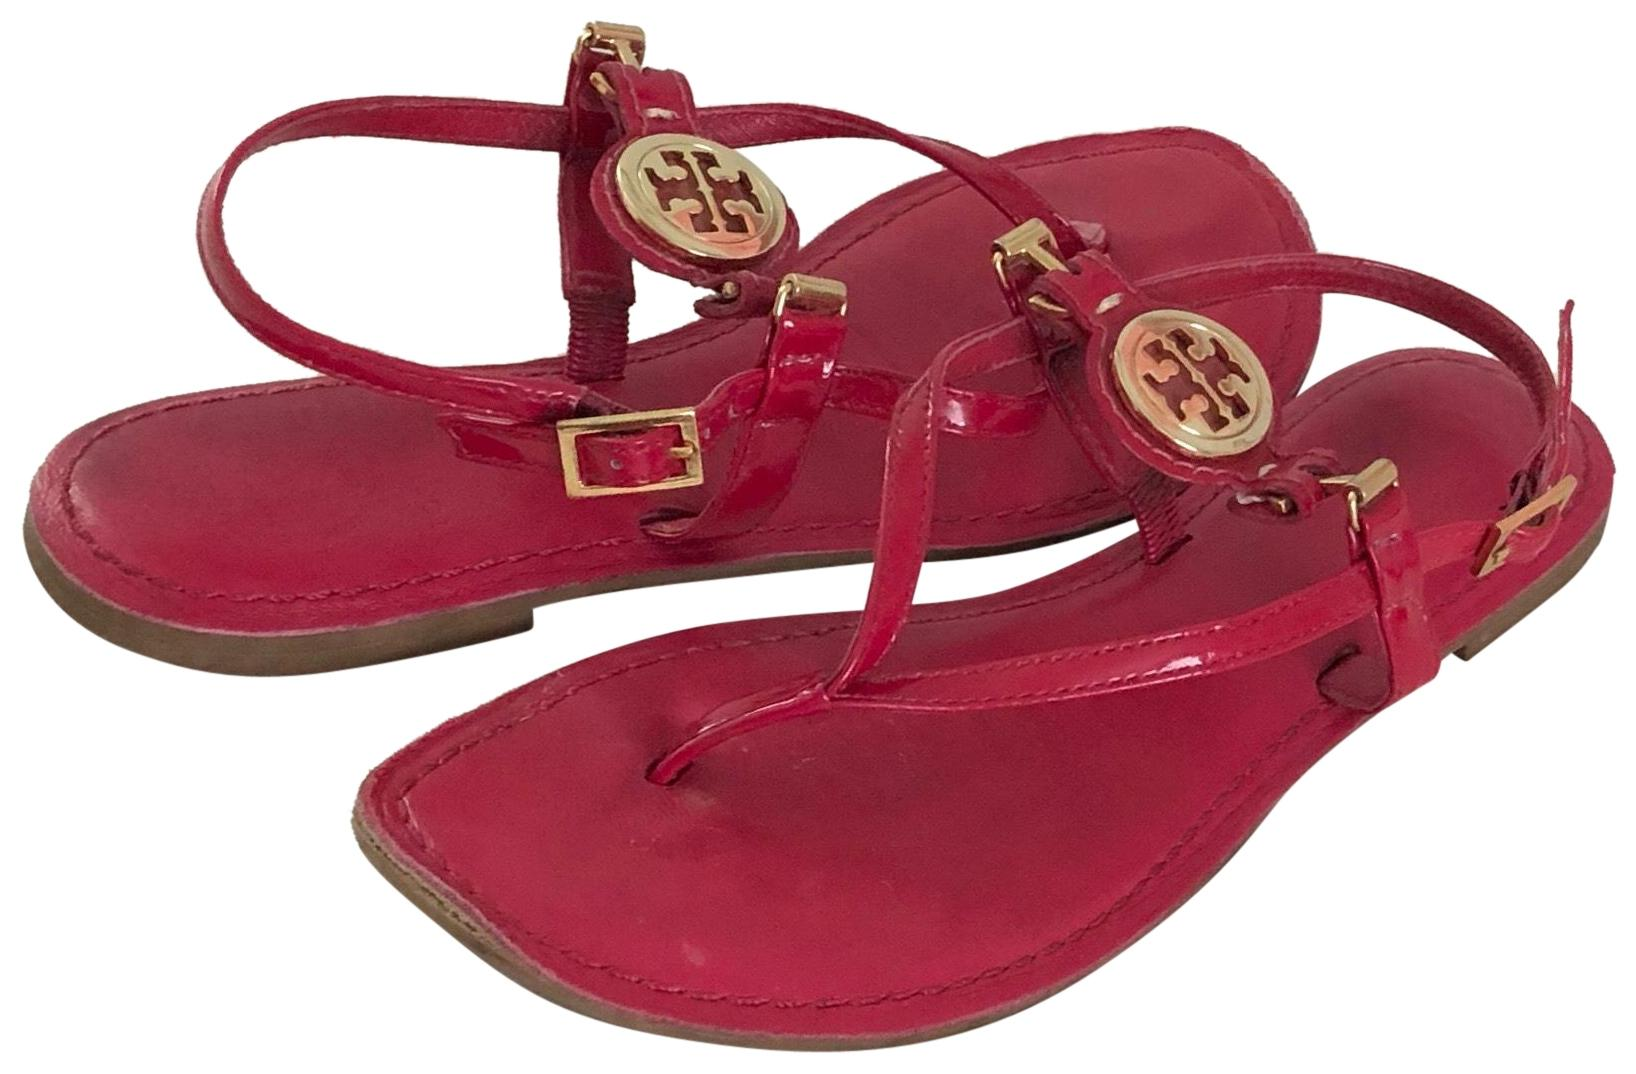 Tory Burch Red Dillan Leather Sandals Size US 6.5 Regular (M, B)